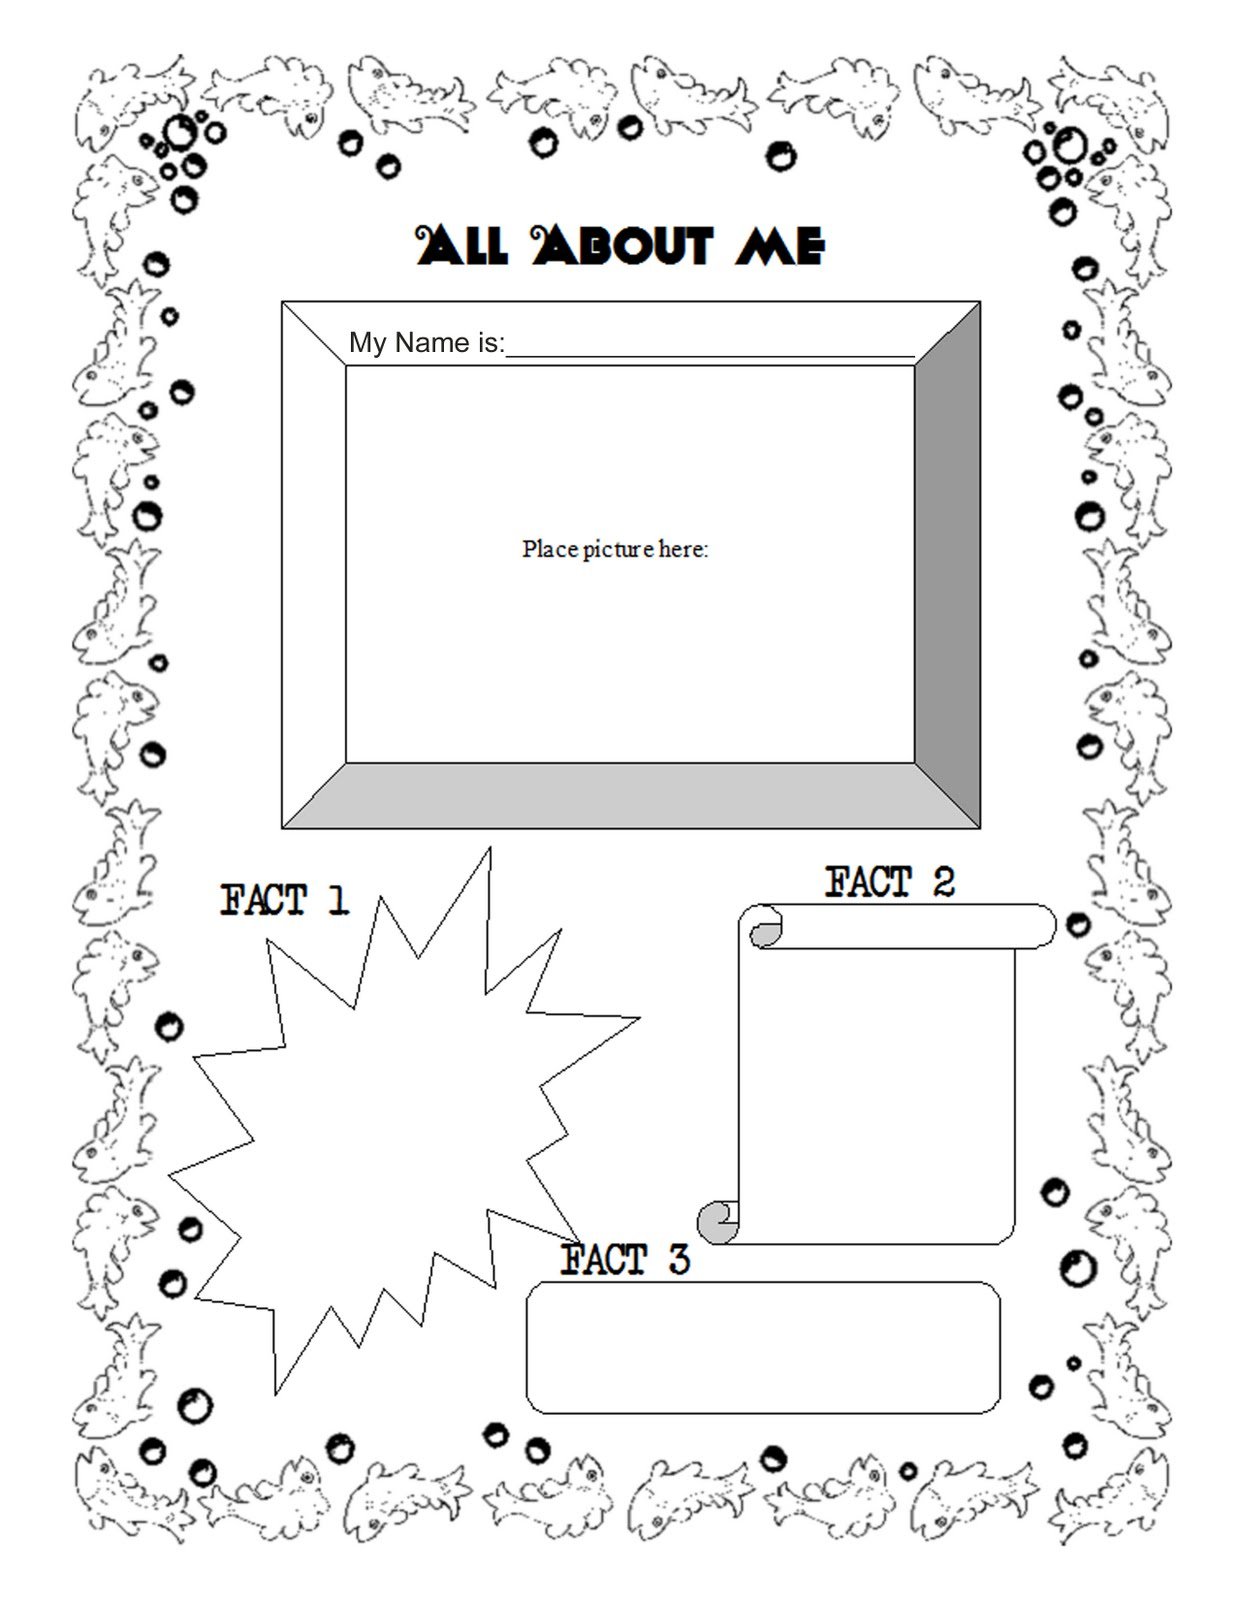 The Marisa Collection All About Me Printable